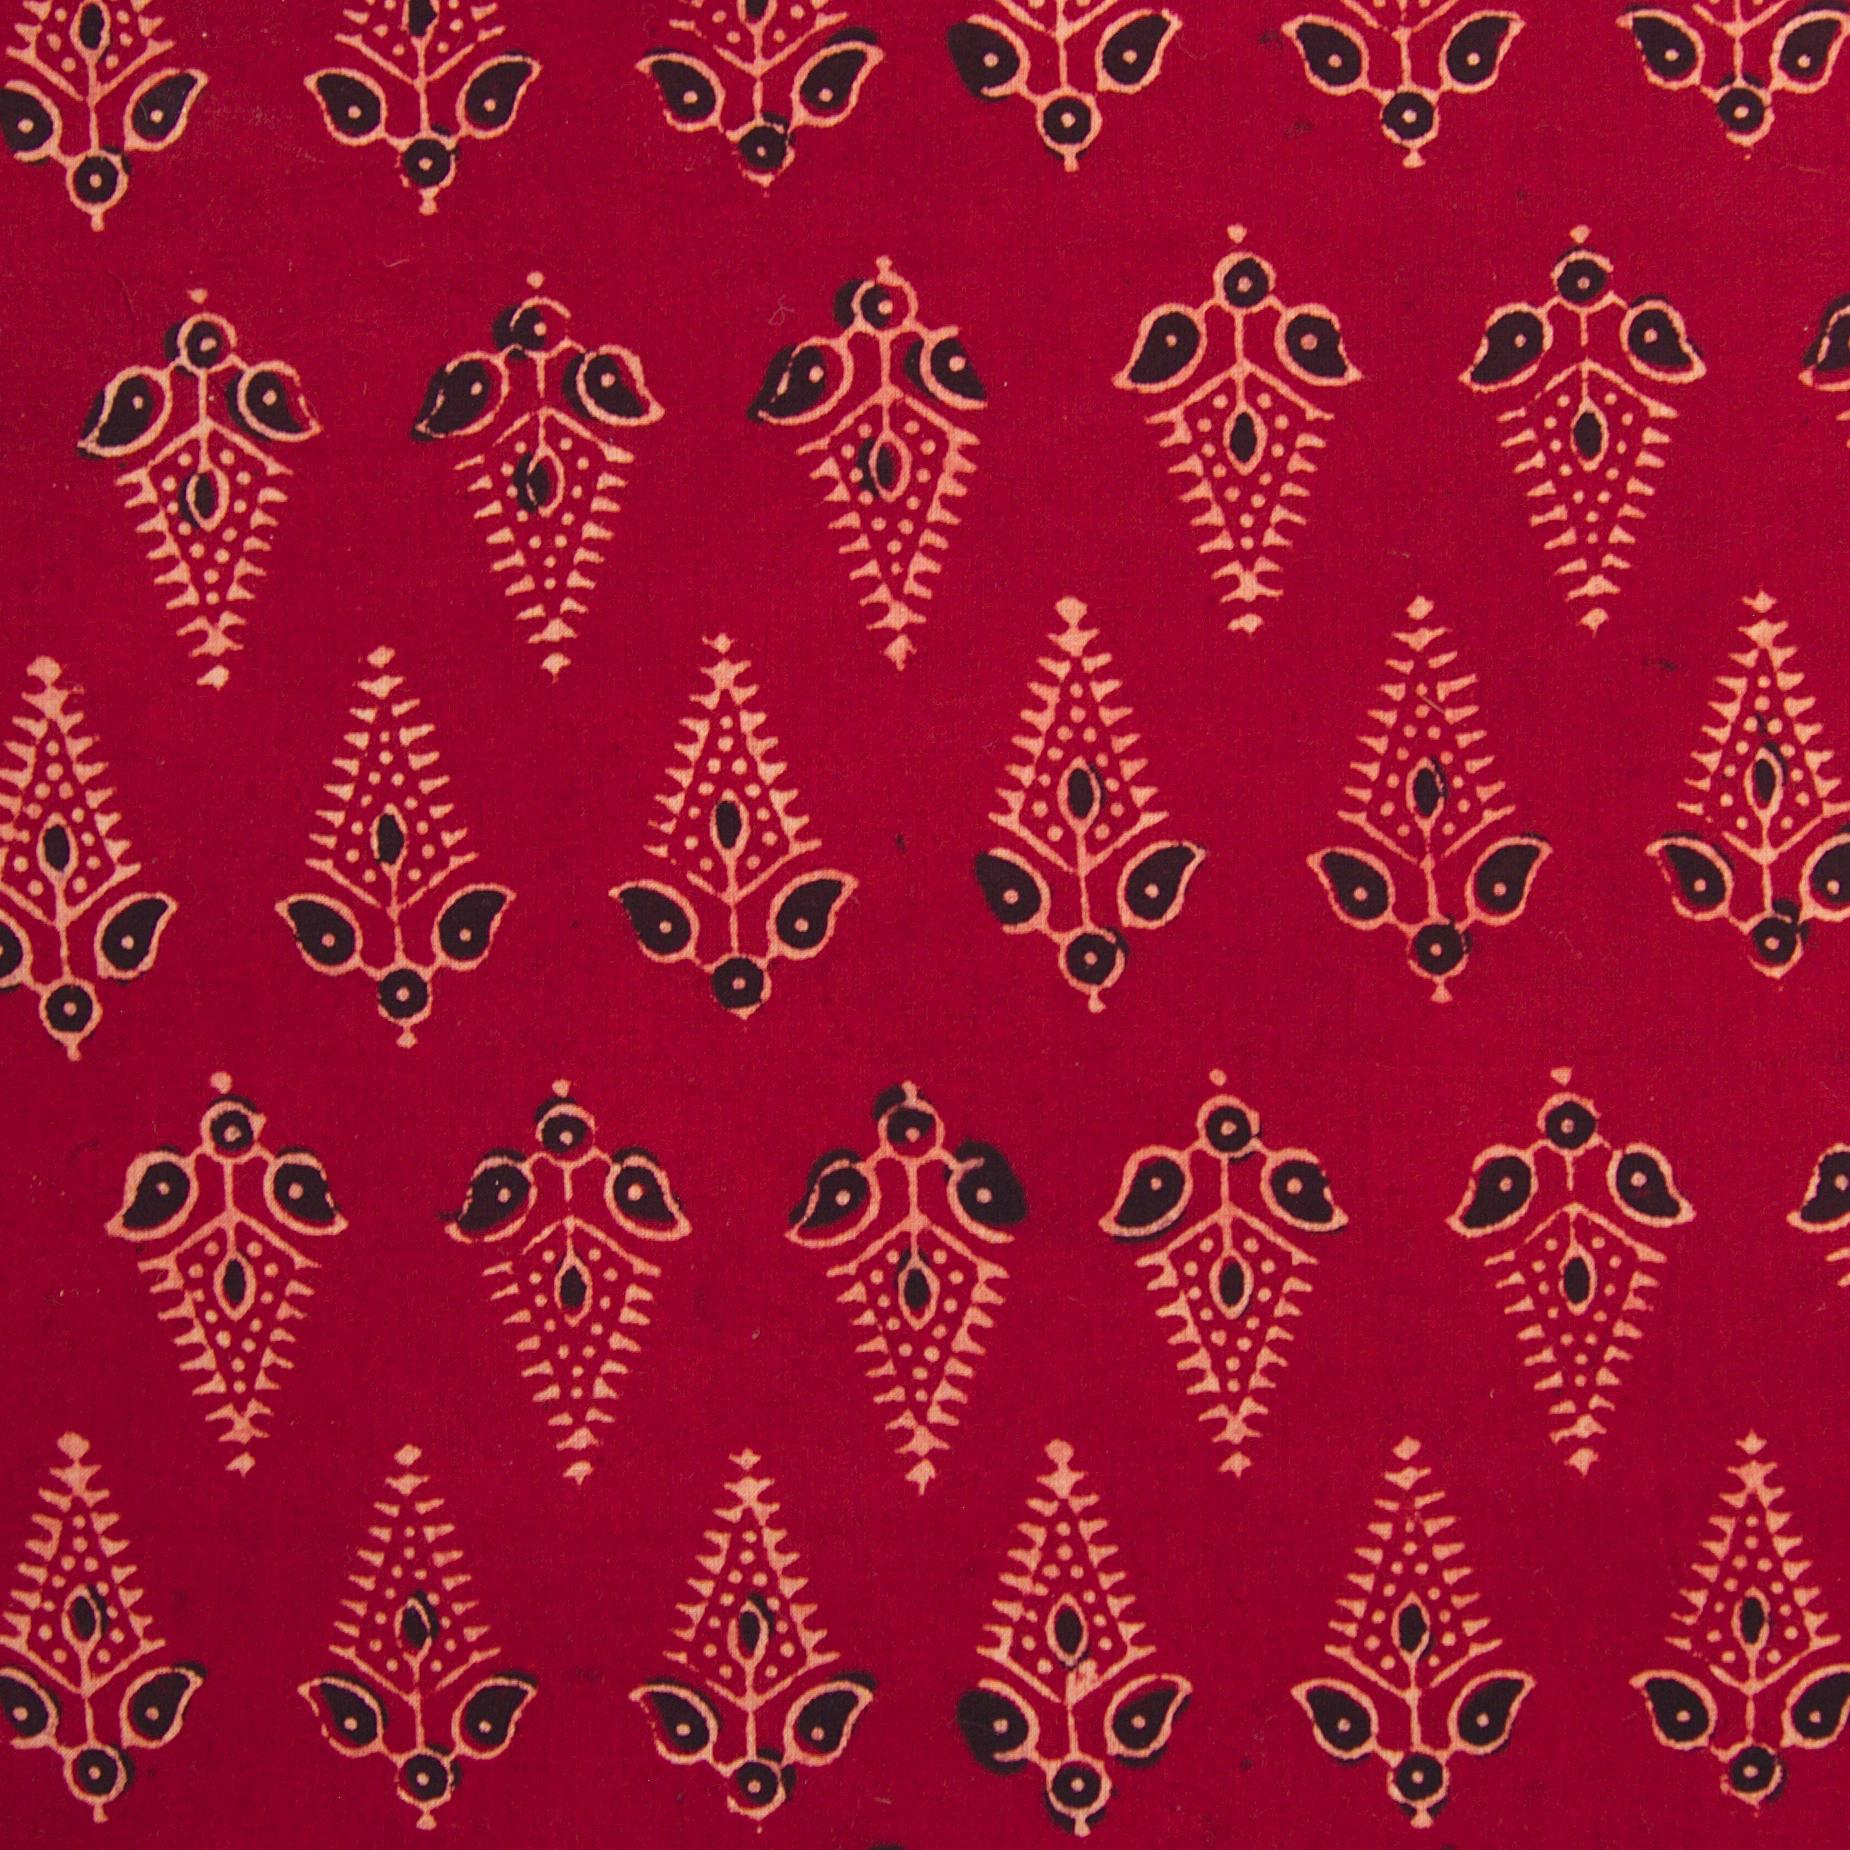 Block Printed Fabric, 100% Cotton, Ajrak Design: Red Madder Root Base, Black, Beige Fern. Close Up